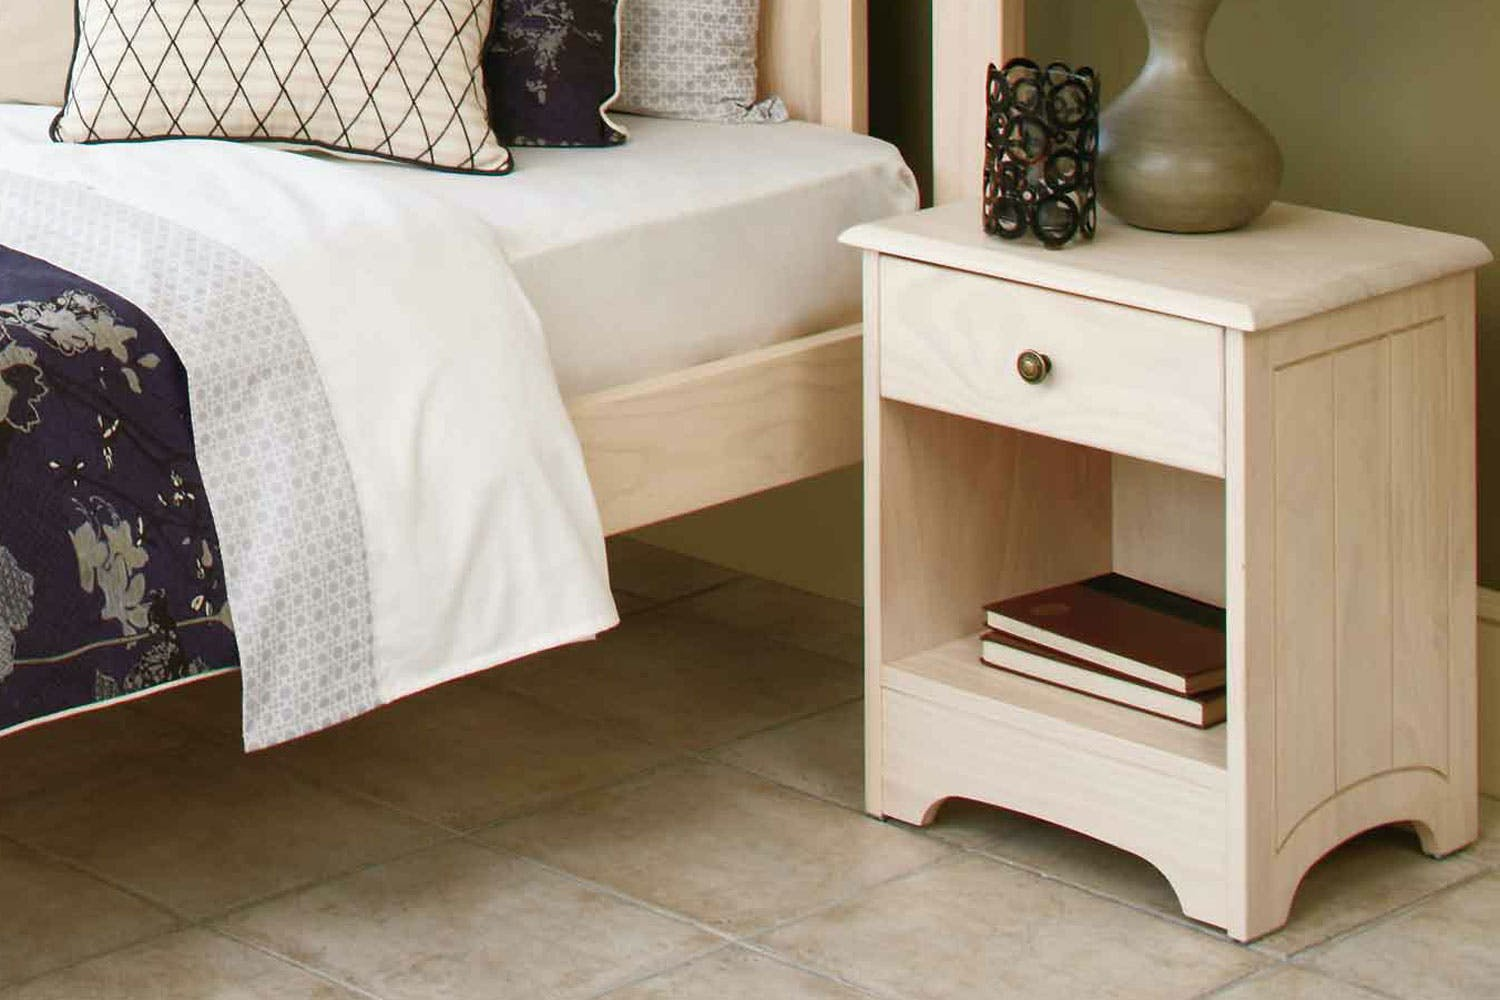 Calais 1 Drawer Bedside Table by Coastwood - White Wash ...